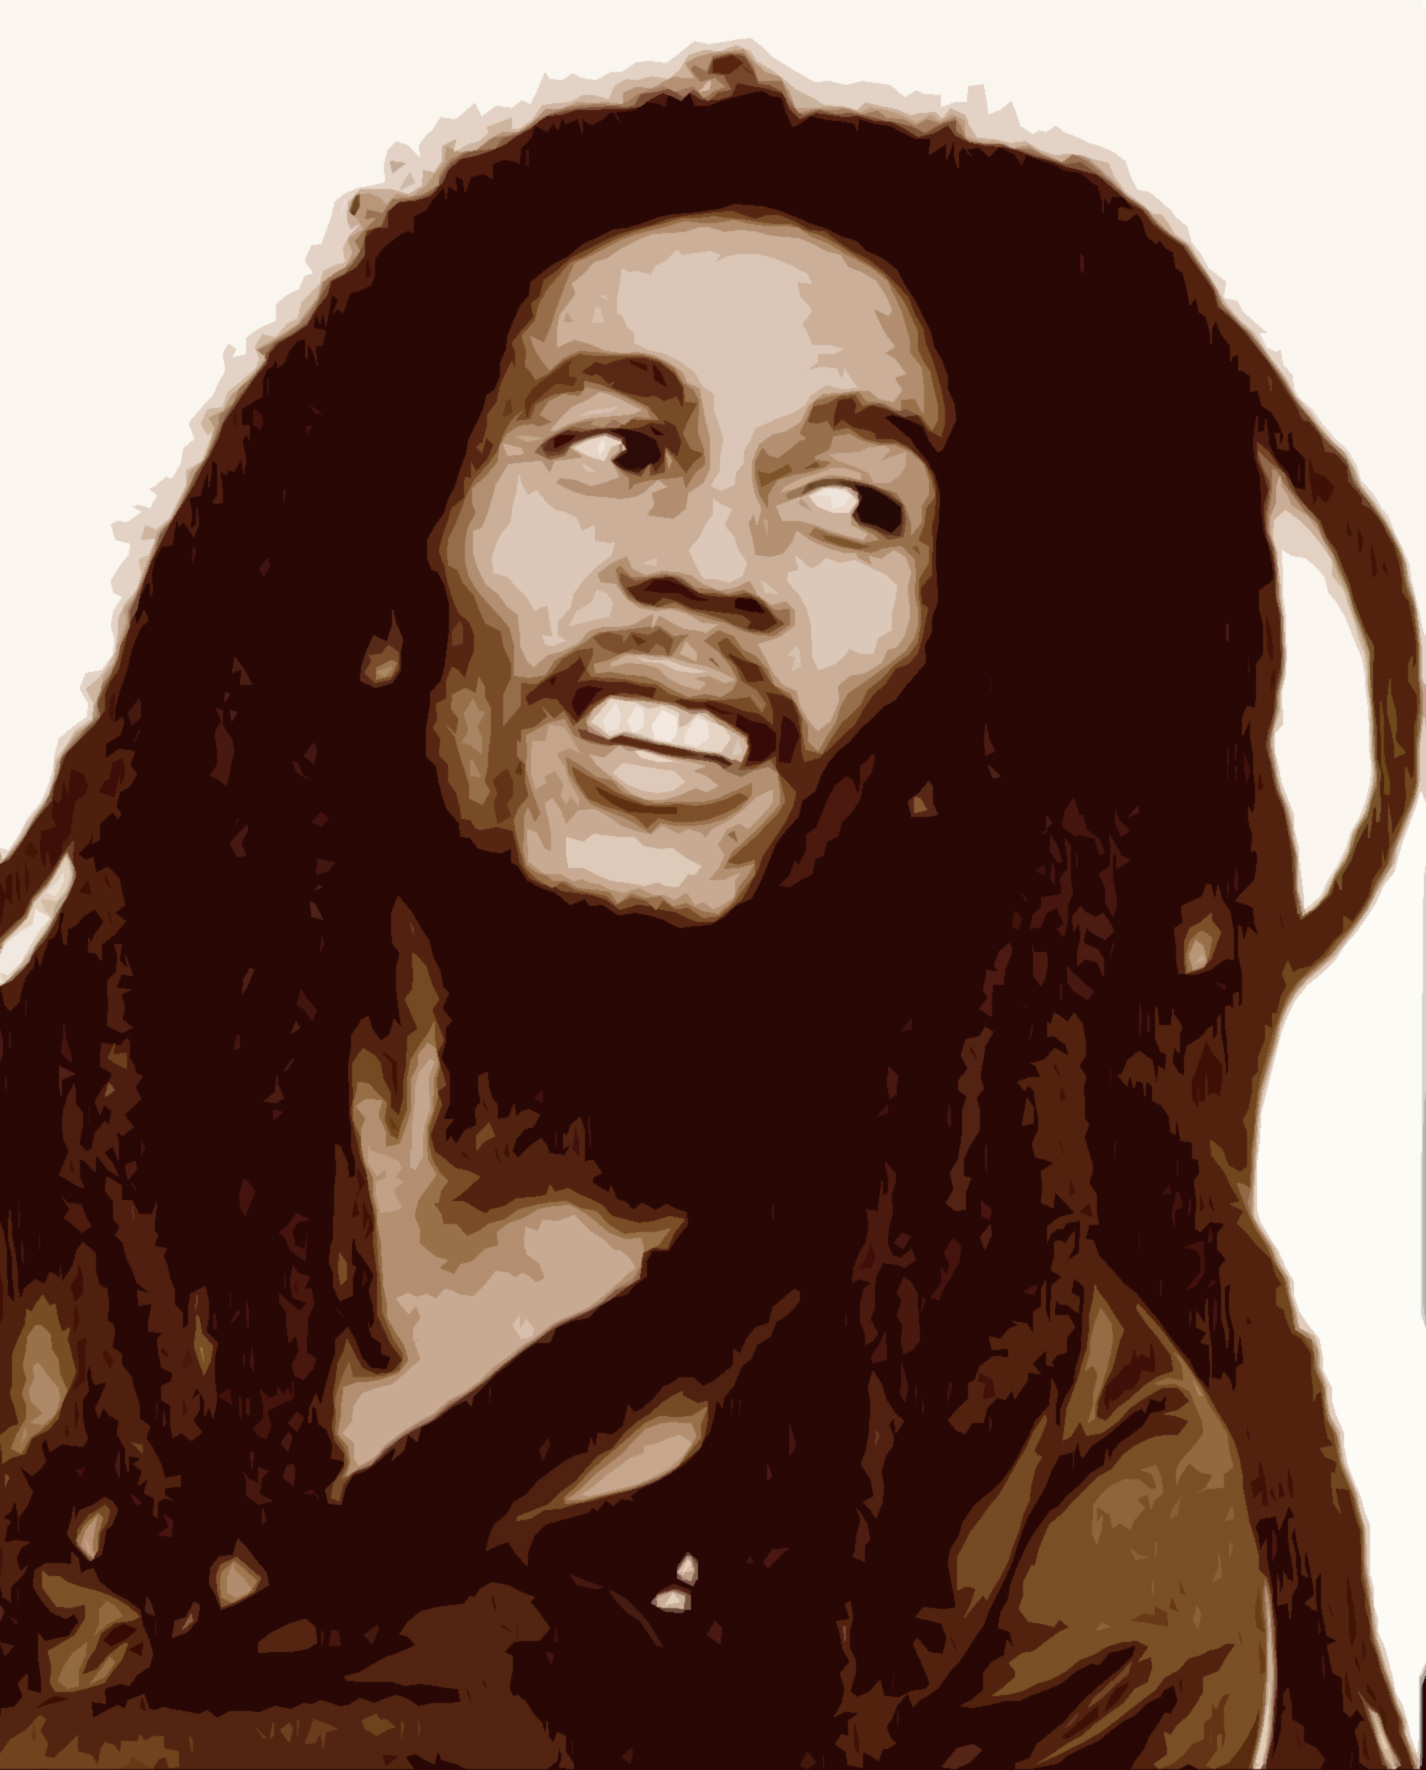 Bob Marley download wallpapers